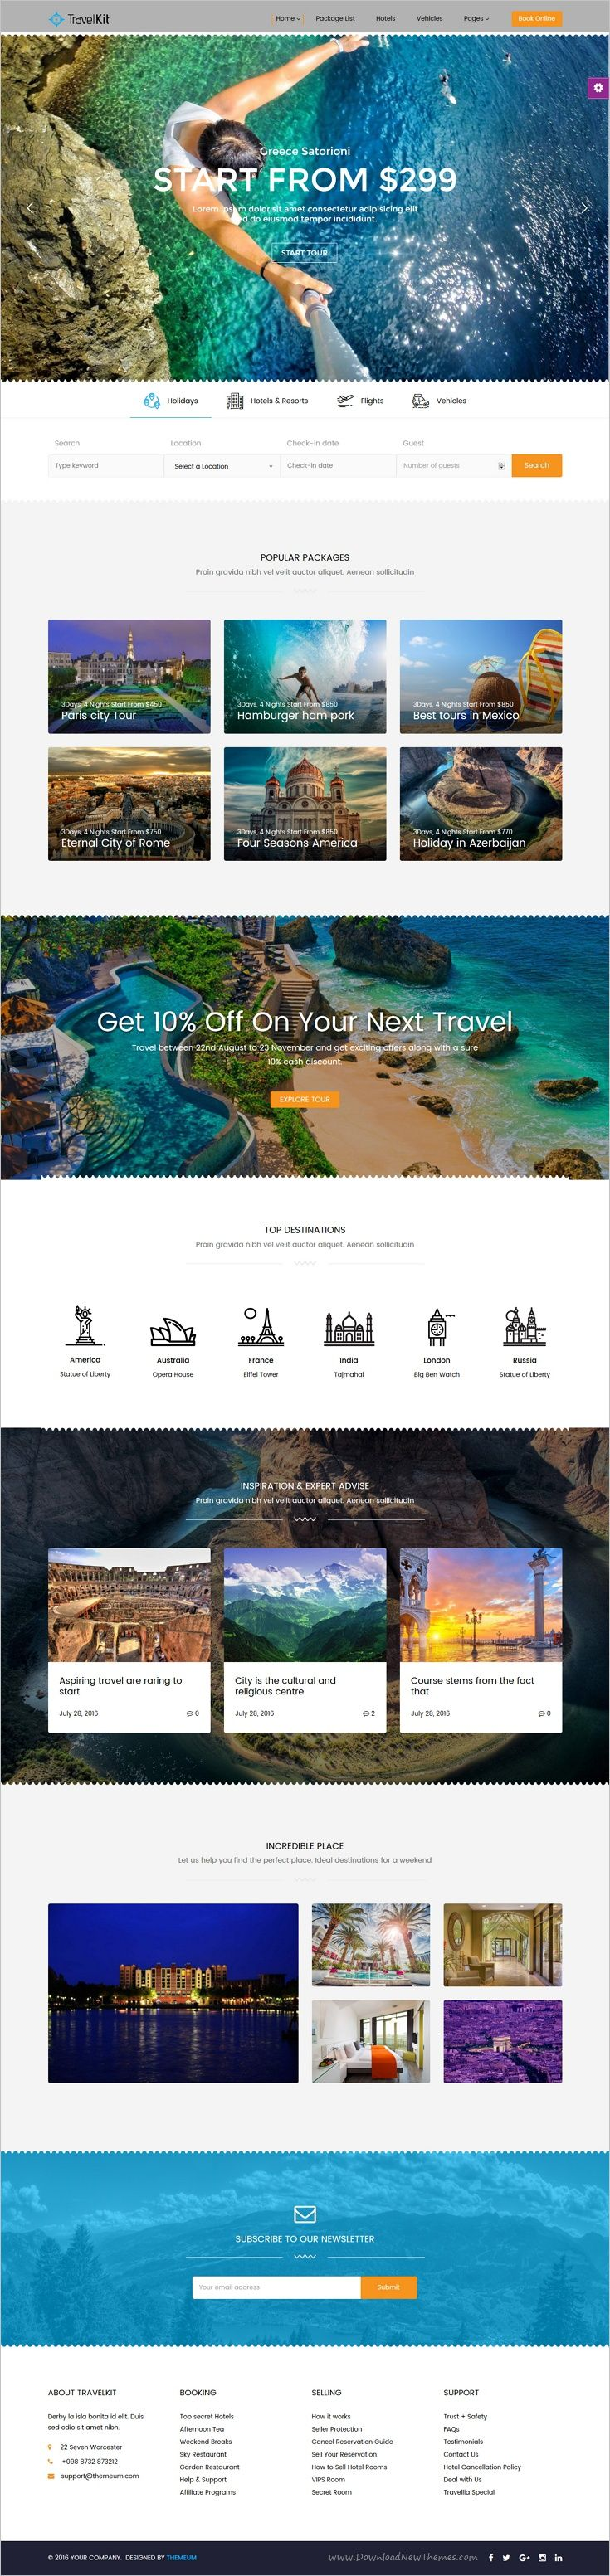 TravelKit is a wonderful responsive #WordPress 5x theme for #webdev the #travel agencies, #tour arrangement companies, tourism sector website download now➩ https://themeforest.net/item/travelkit-the-fullfledged-tour-travel-wordpress-theme/18443964?ref=Datasata